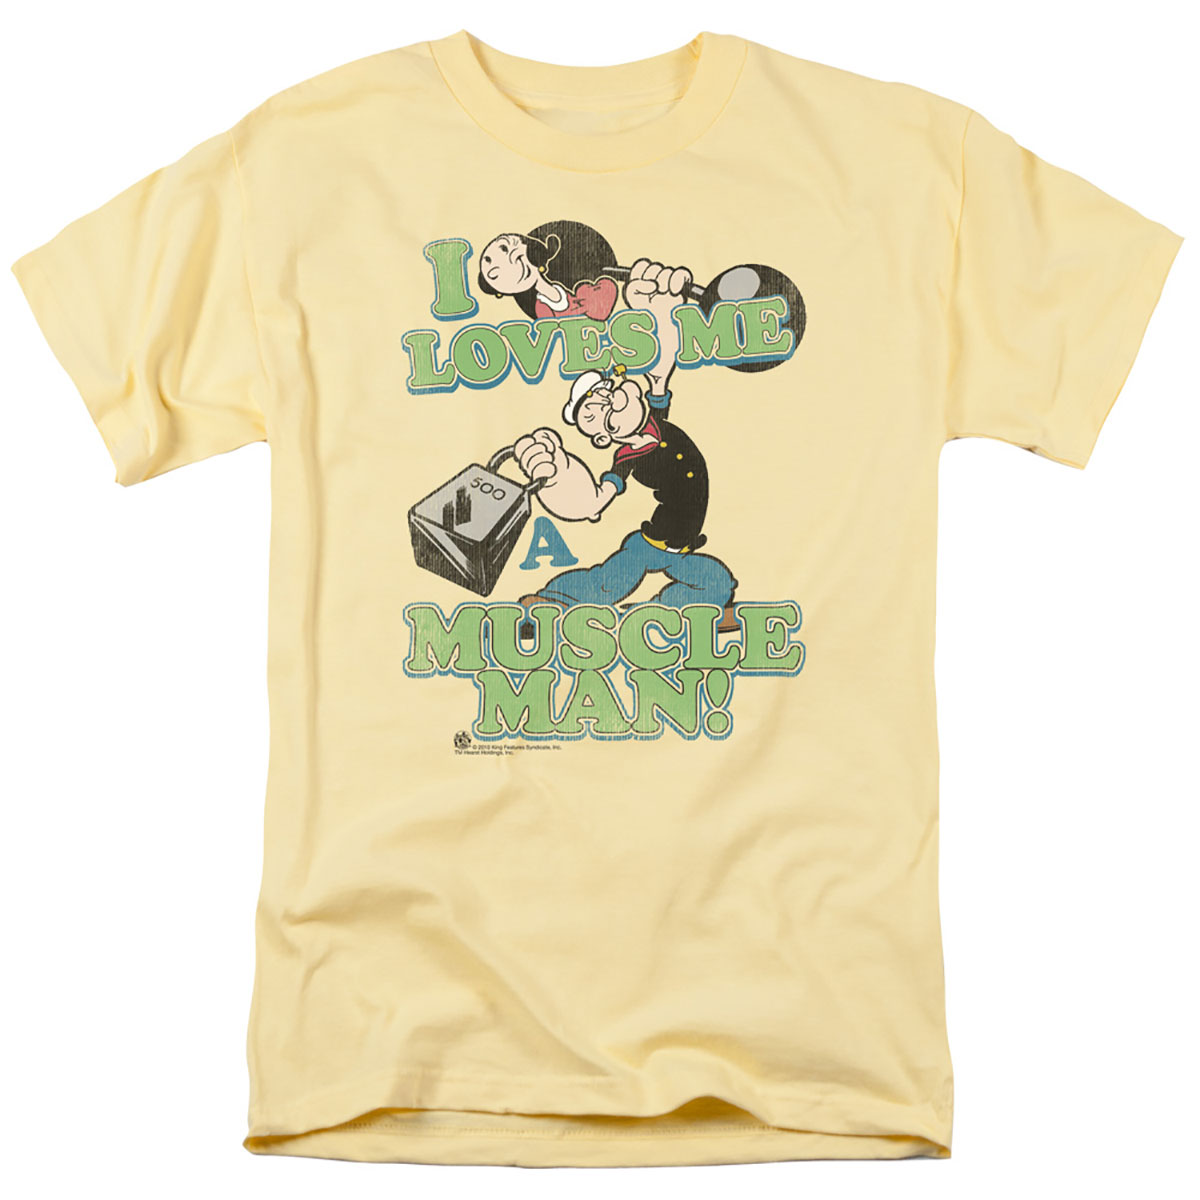 Popeye & Olive Oyl Love A Muscle Man T-Shirt